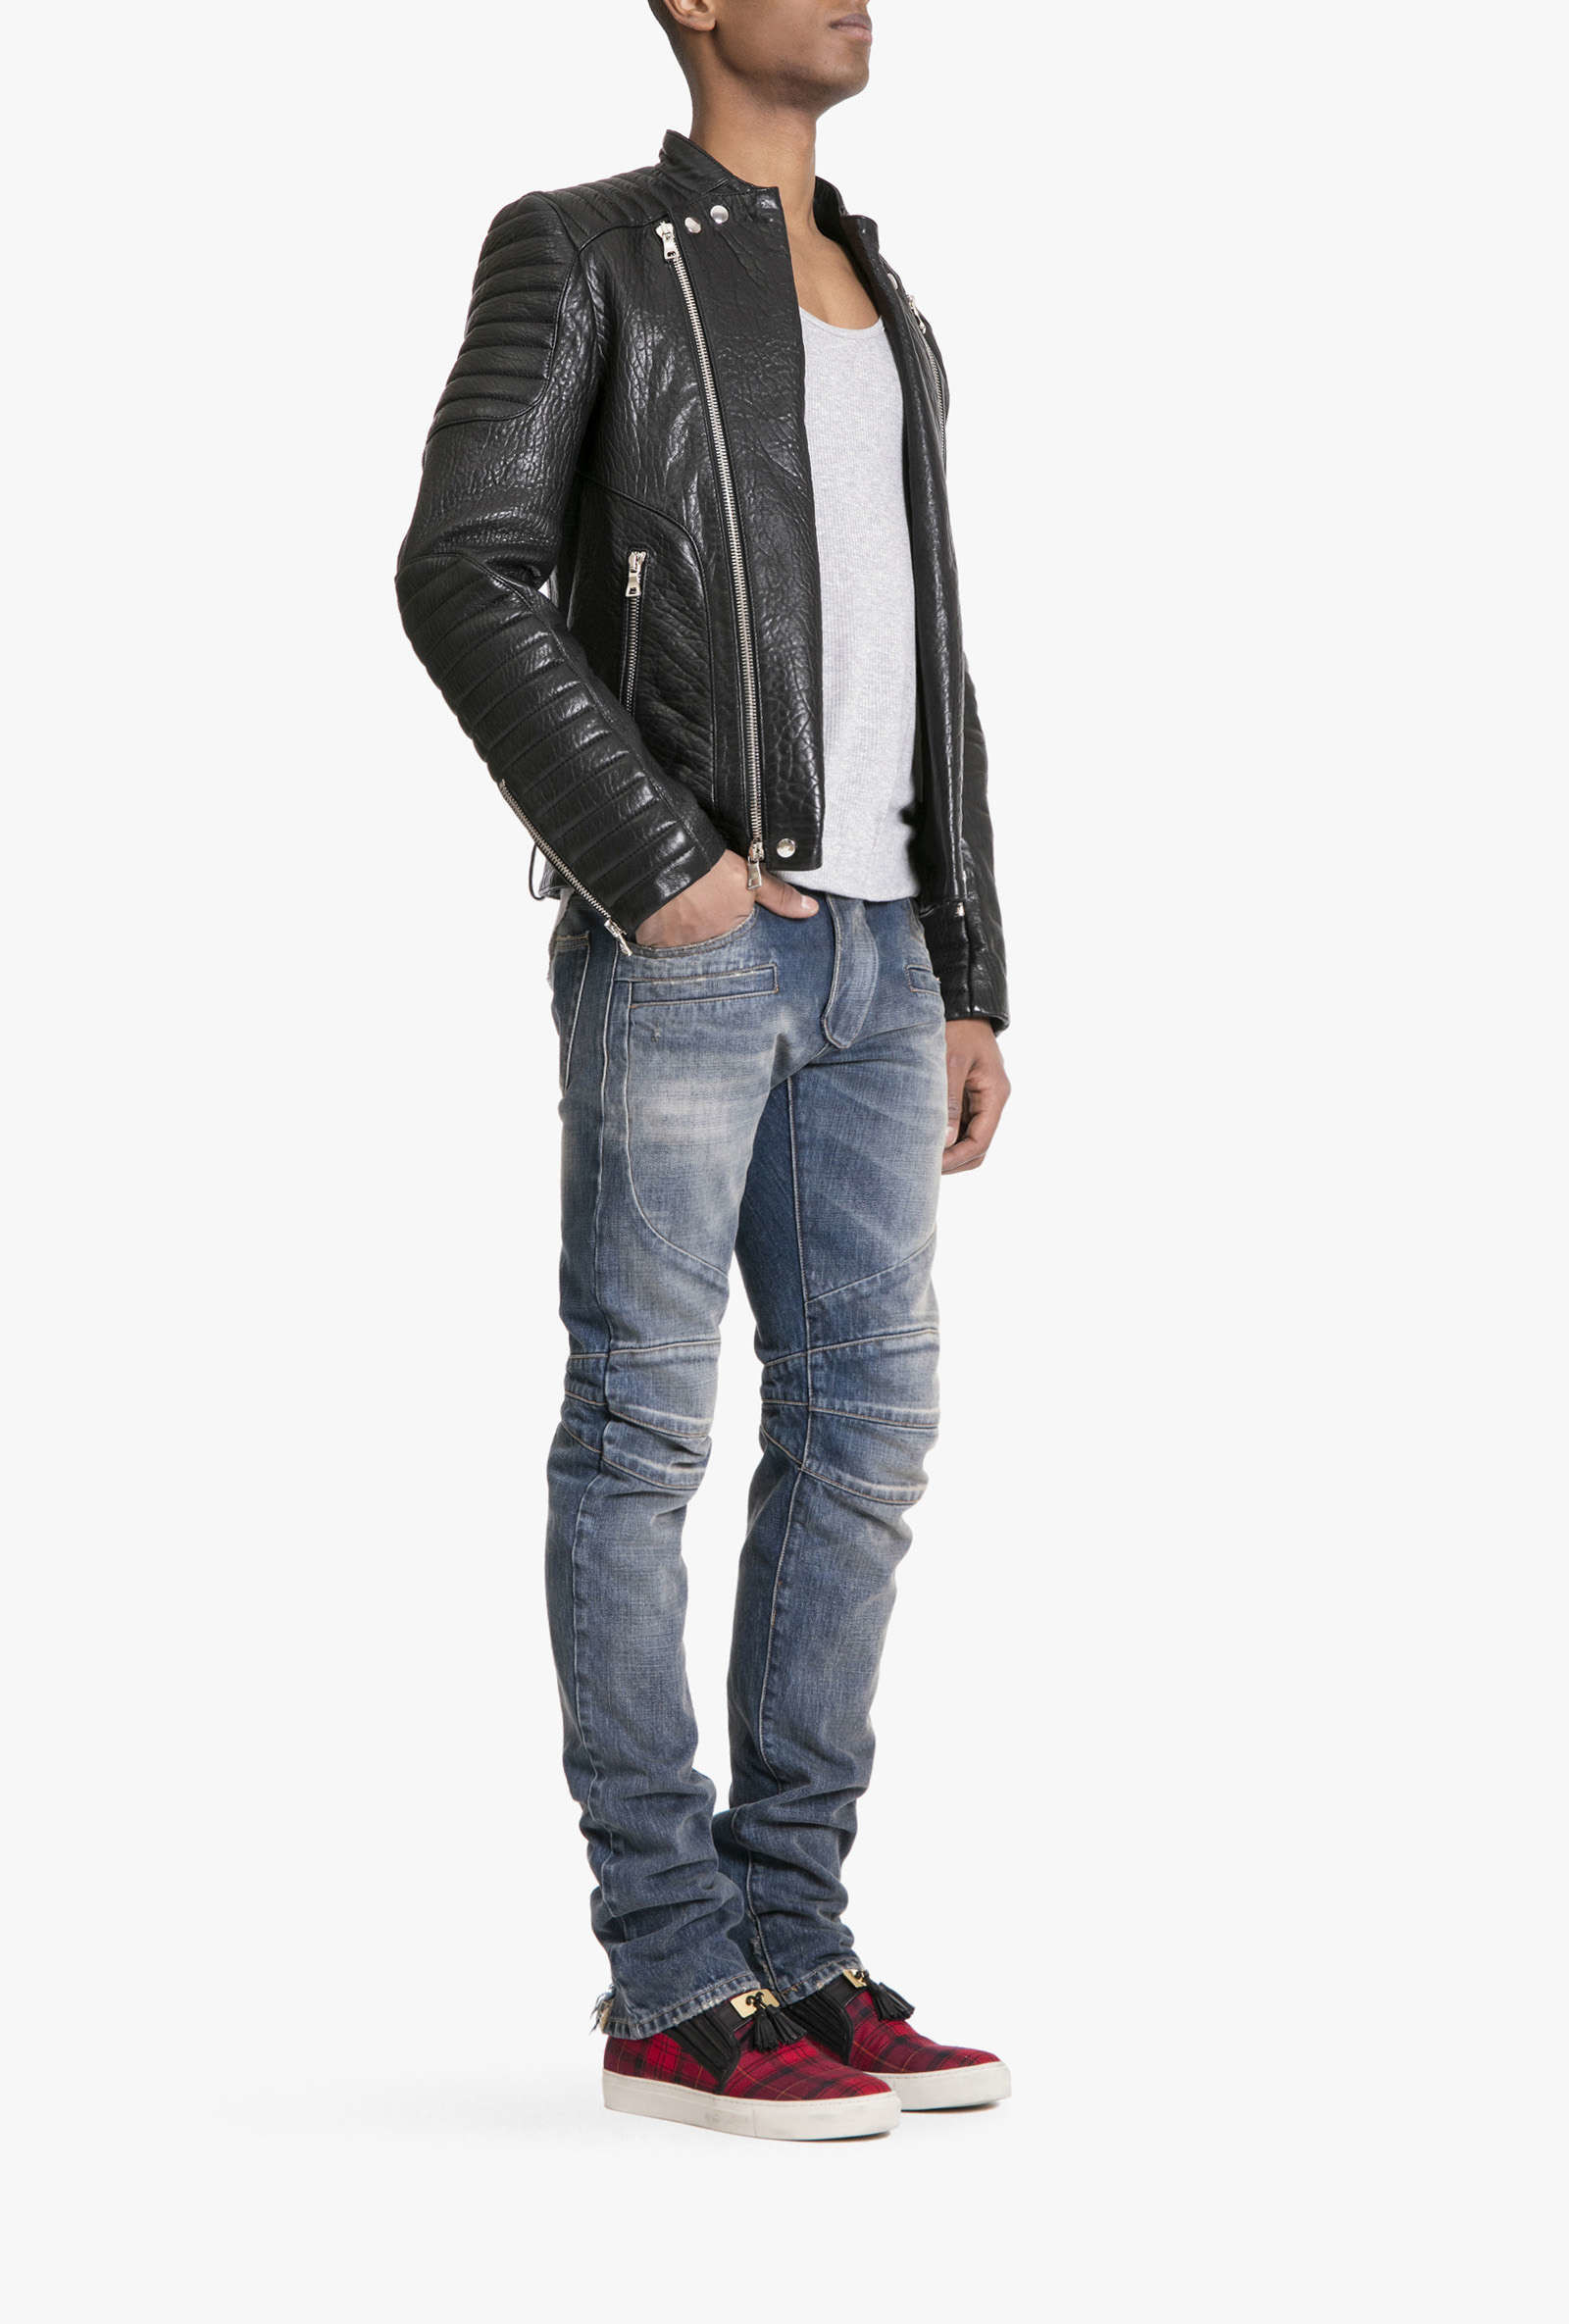 Balmain Shoes Men | Balmain Leather Jacket | Balmain Leather Jacket